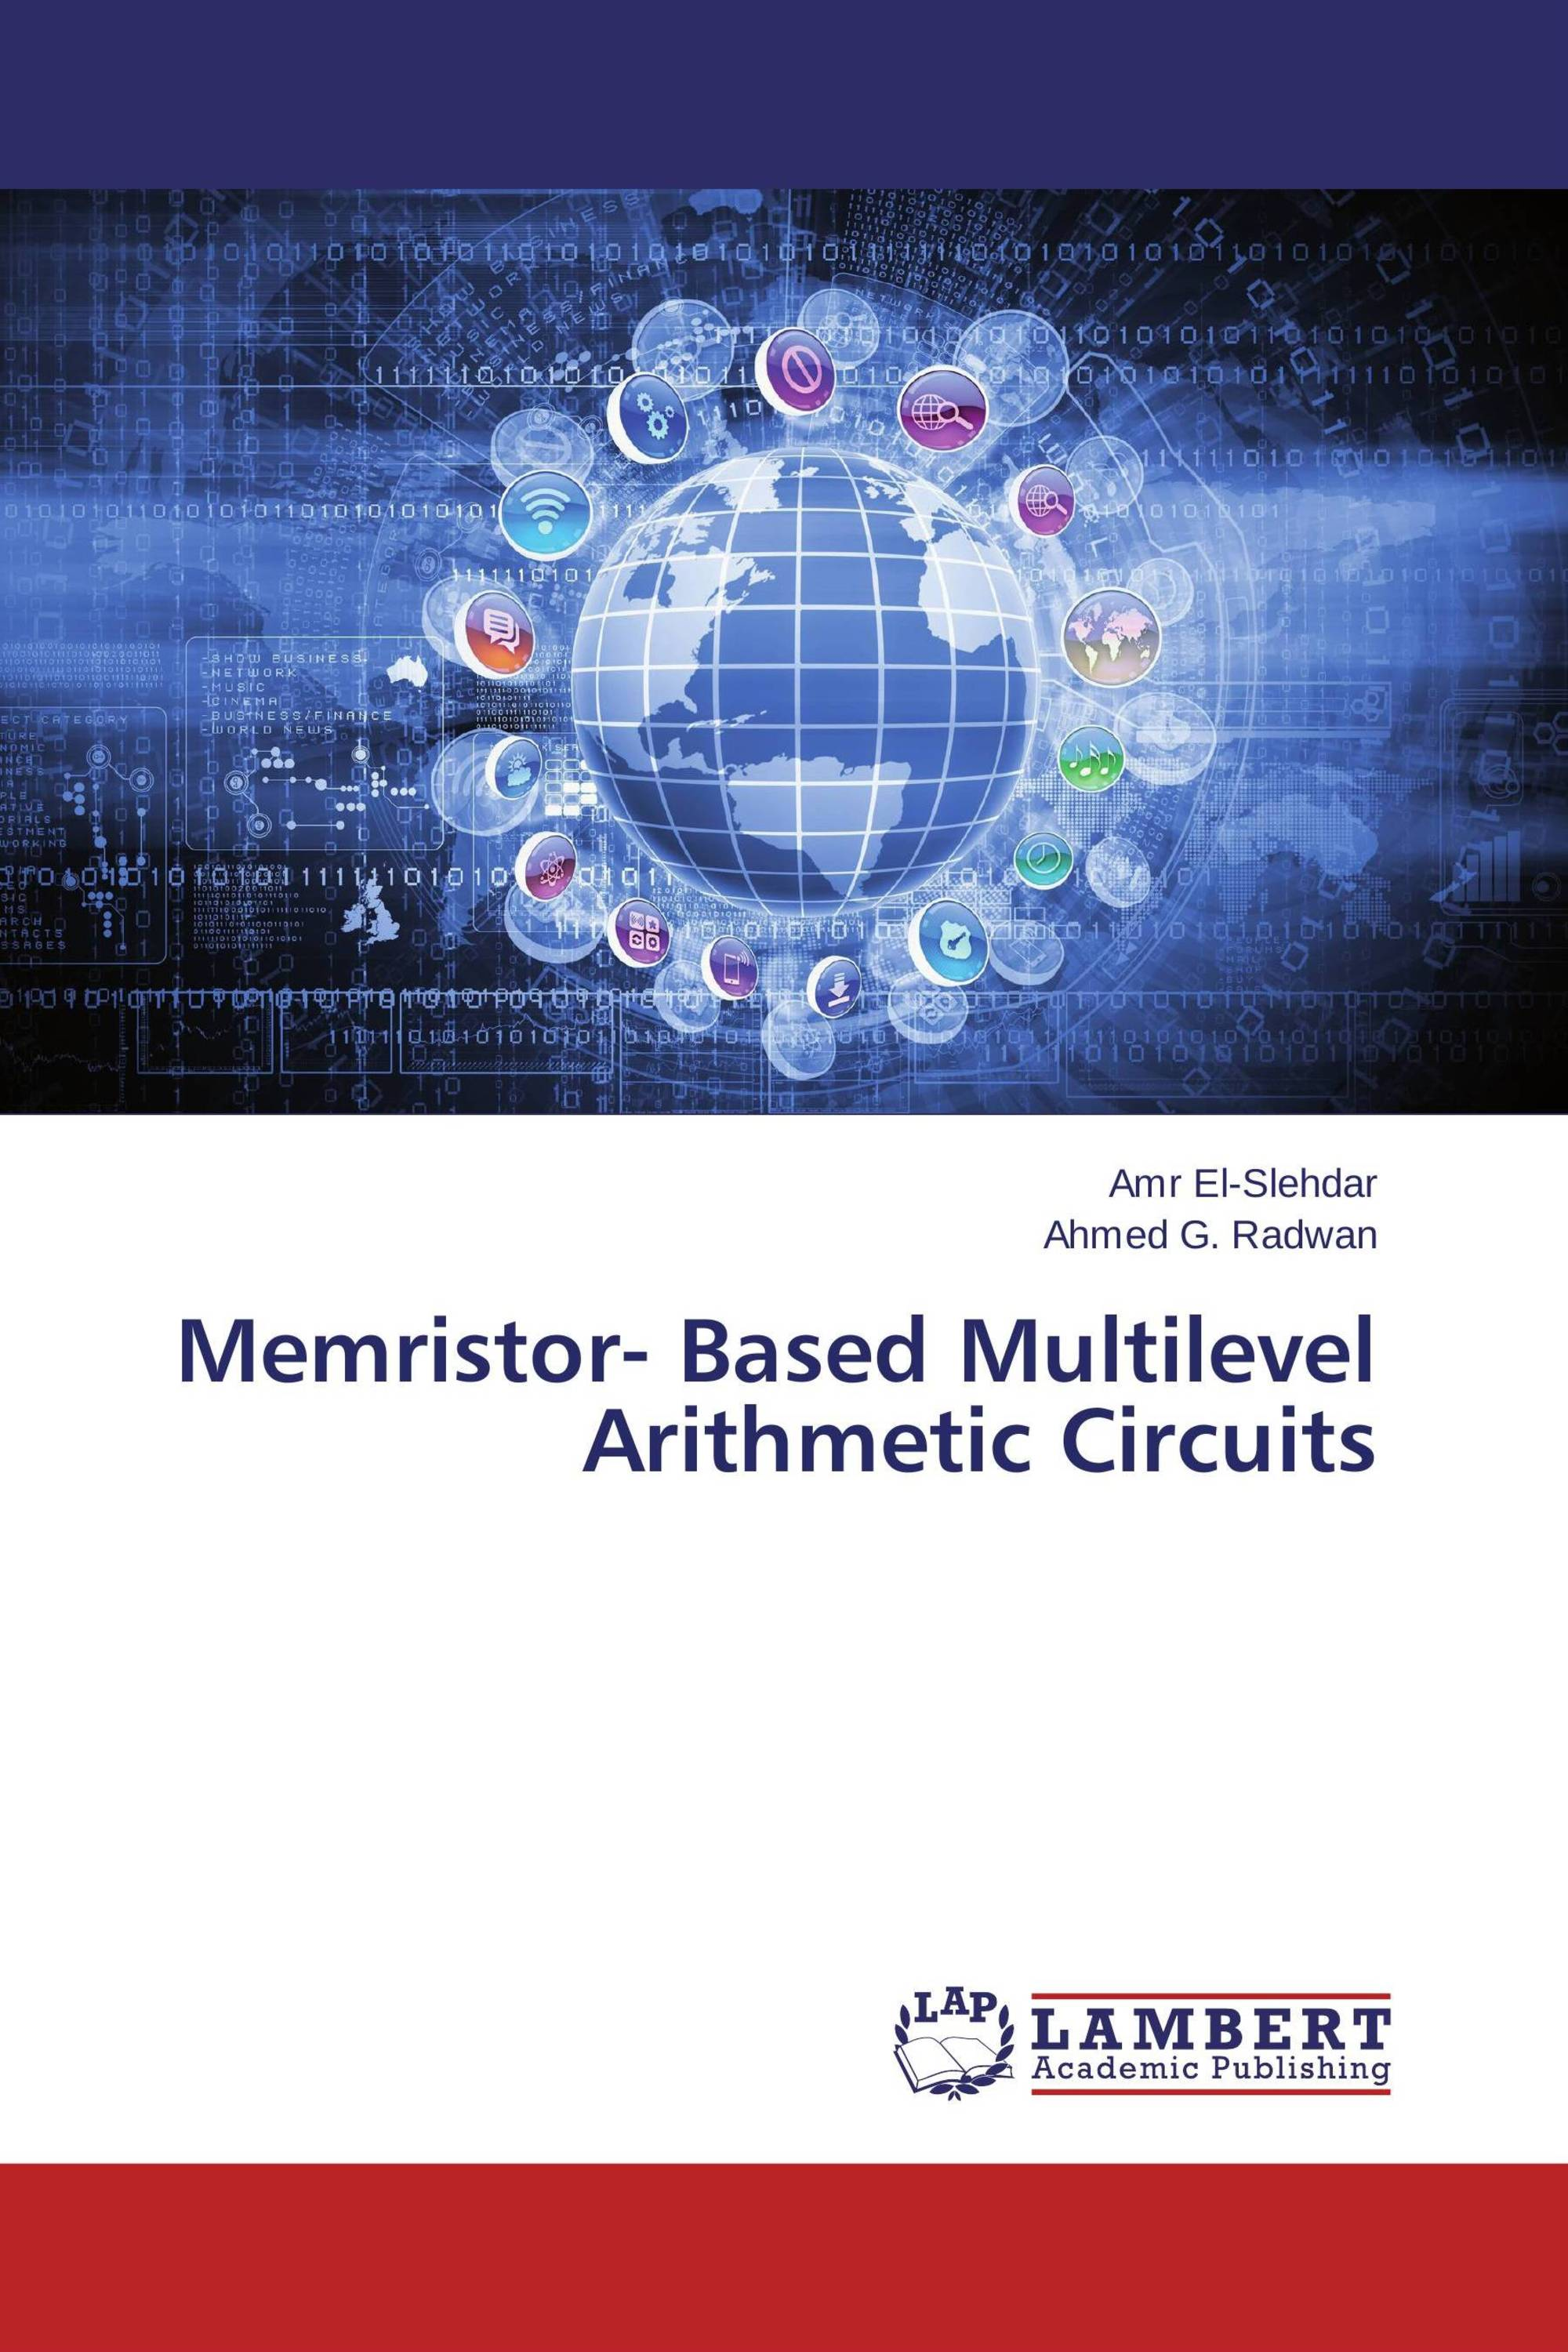 Memristor- Based Multilevel Arithmetic Circuits